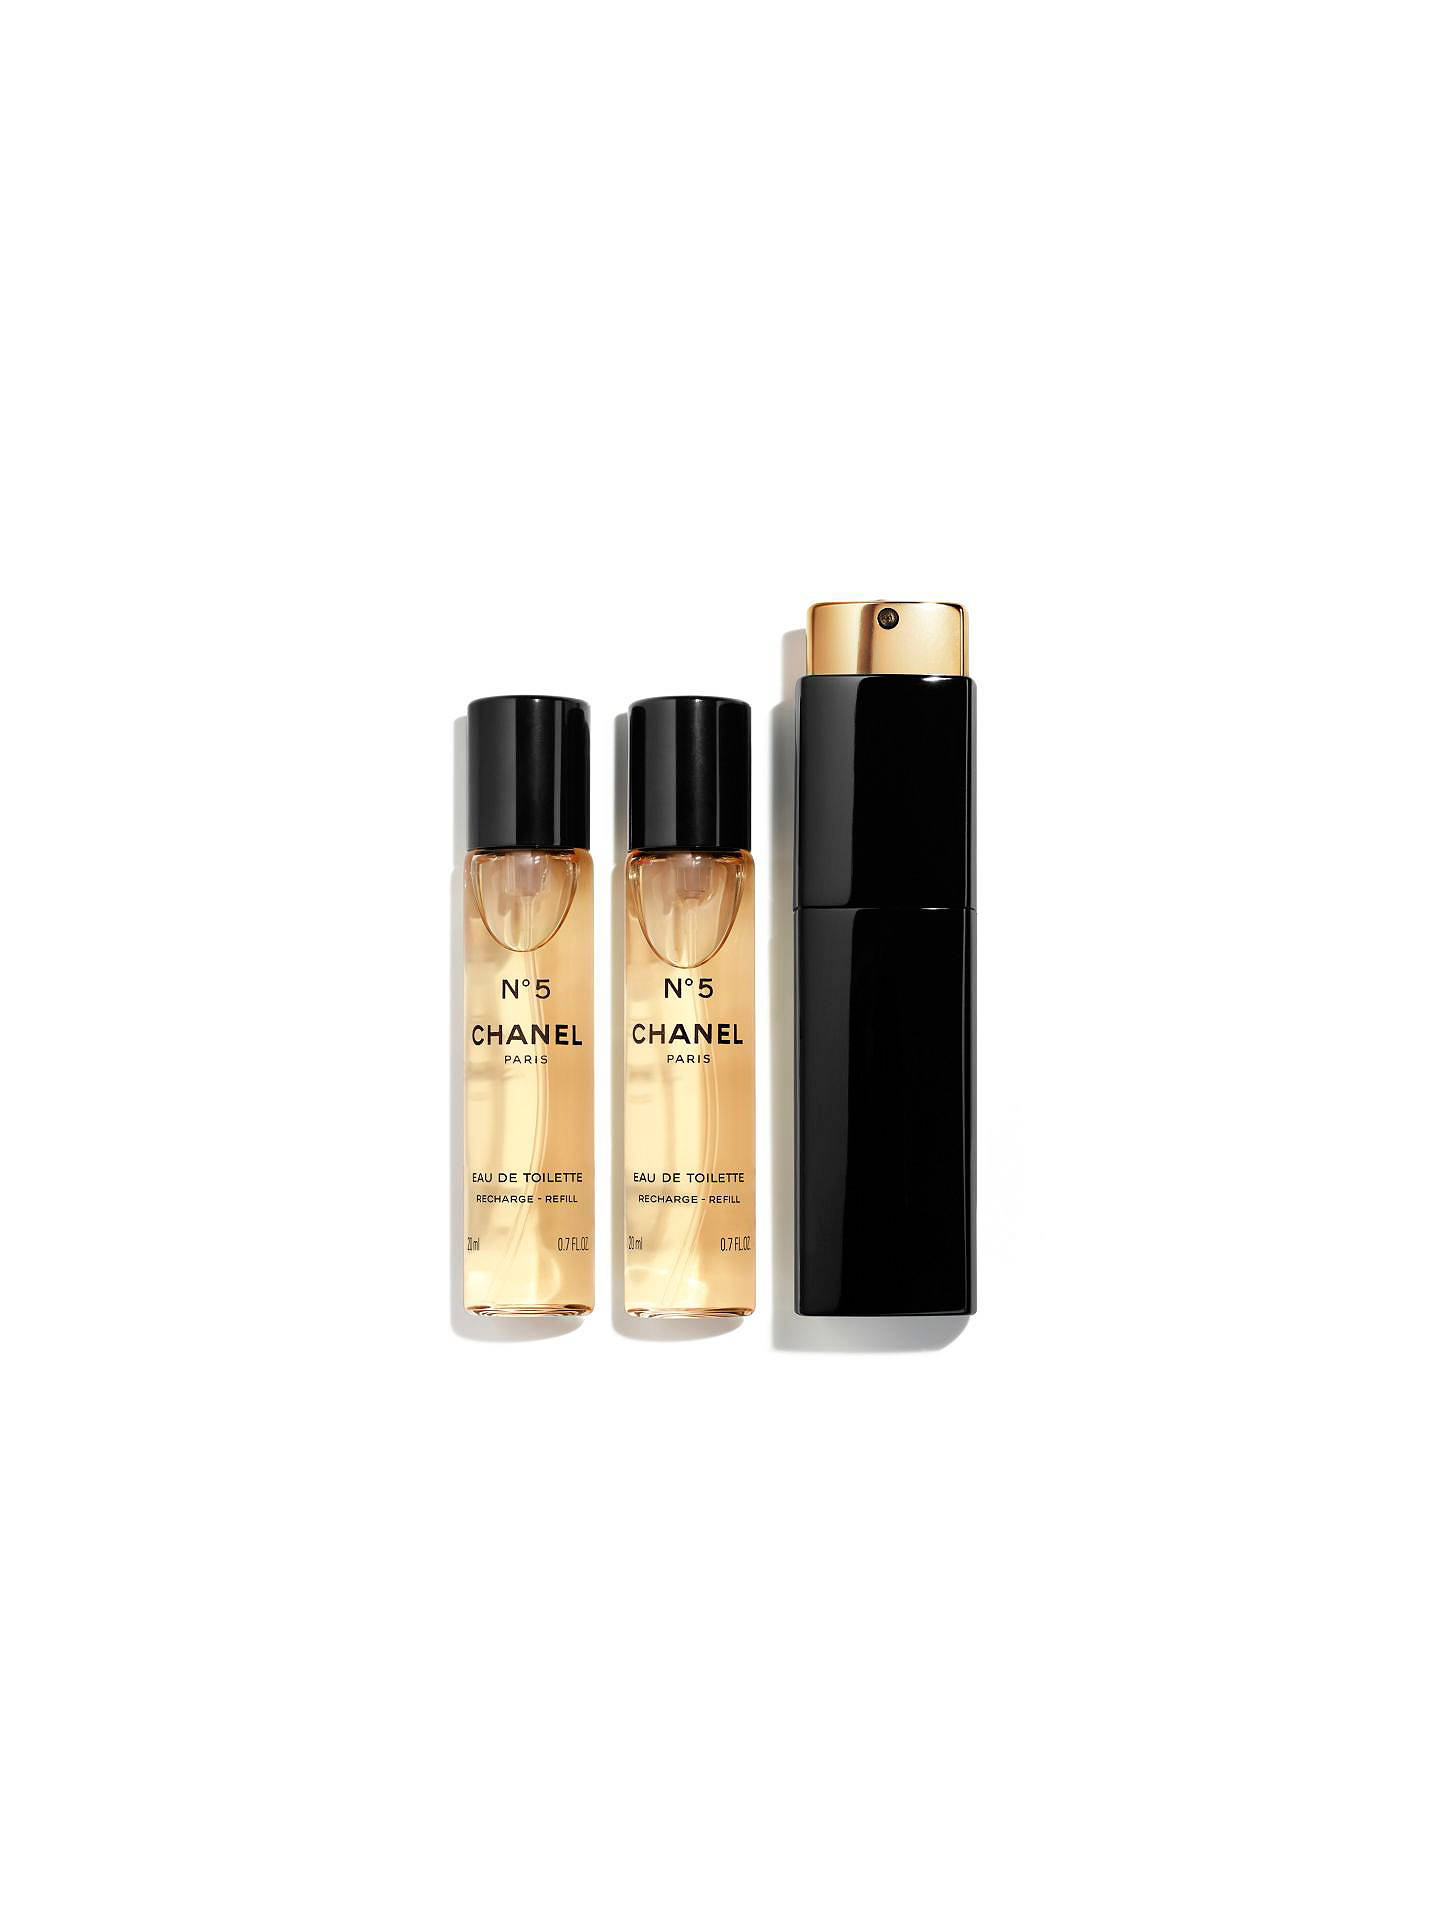 Chanel N 5 Eau De Toilette Purse Spray 3 X 20ml Online At Johnlewis